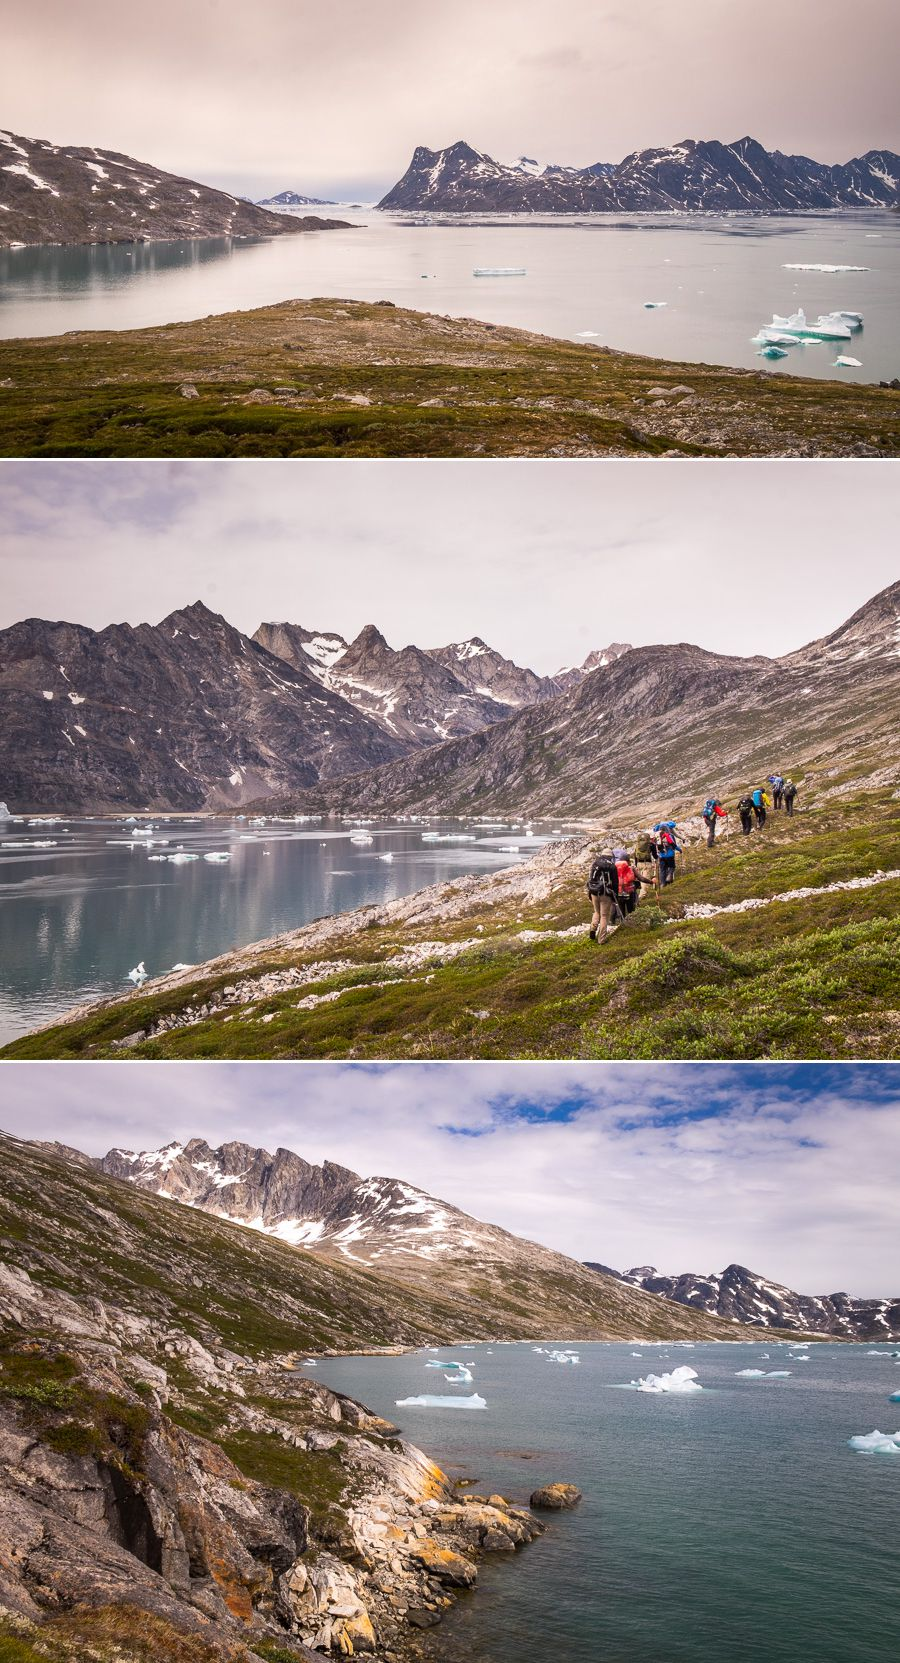 Different views of mountains and water as we hike along the Ikateq Strait towards the Tunu Fjord